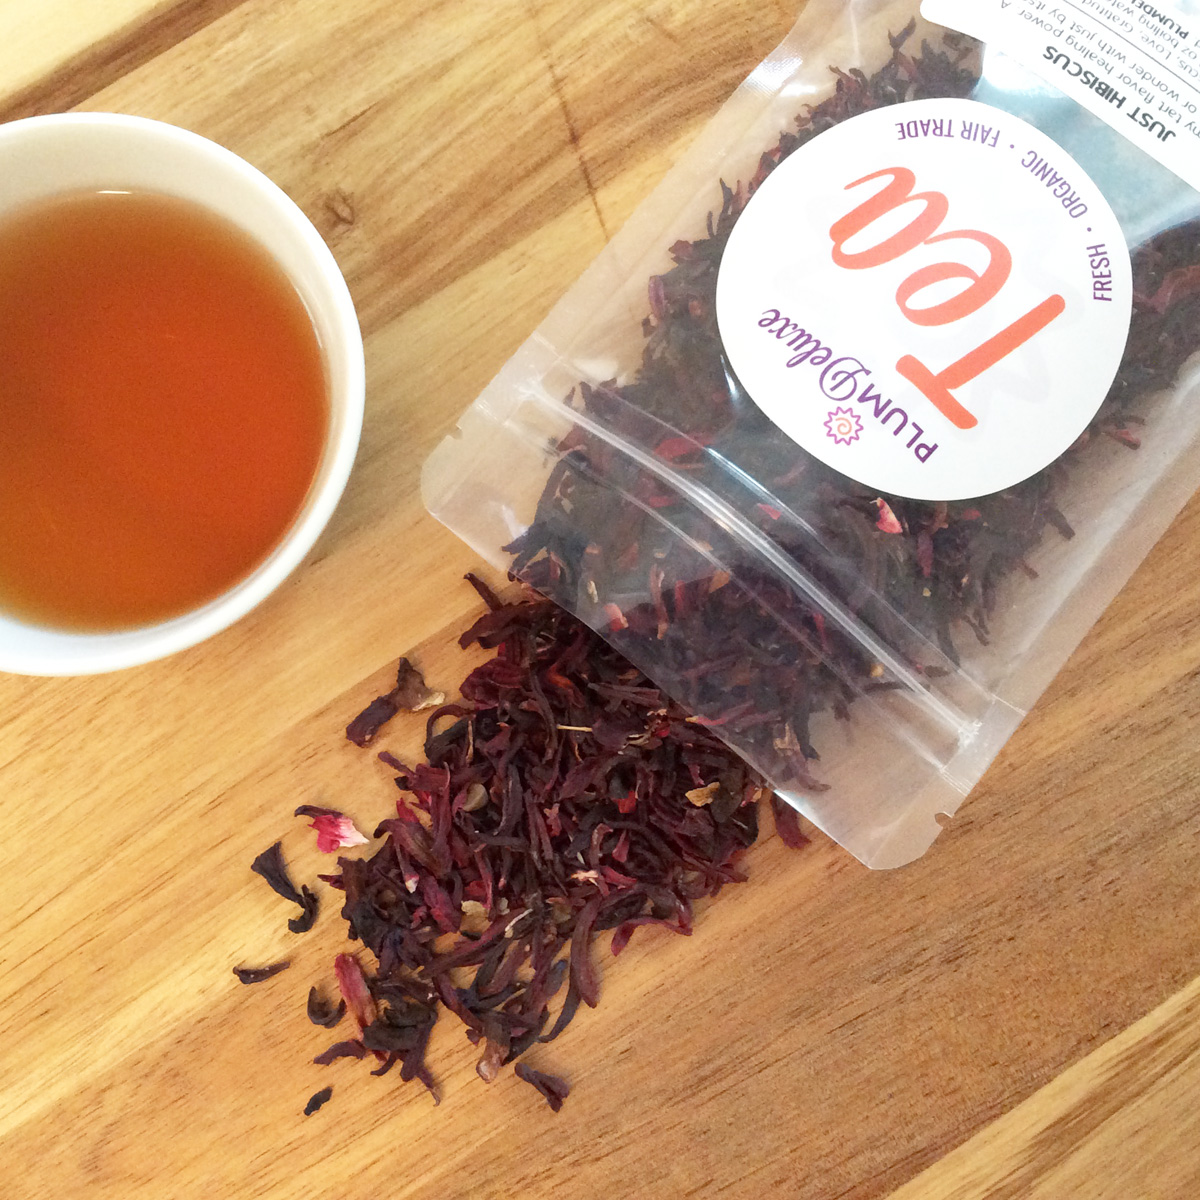 Overhead view of a bag of organic hibiscus herbal tea and a cup of tea on a wooden board.